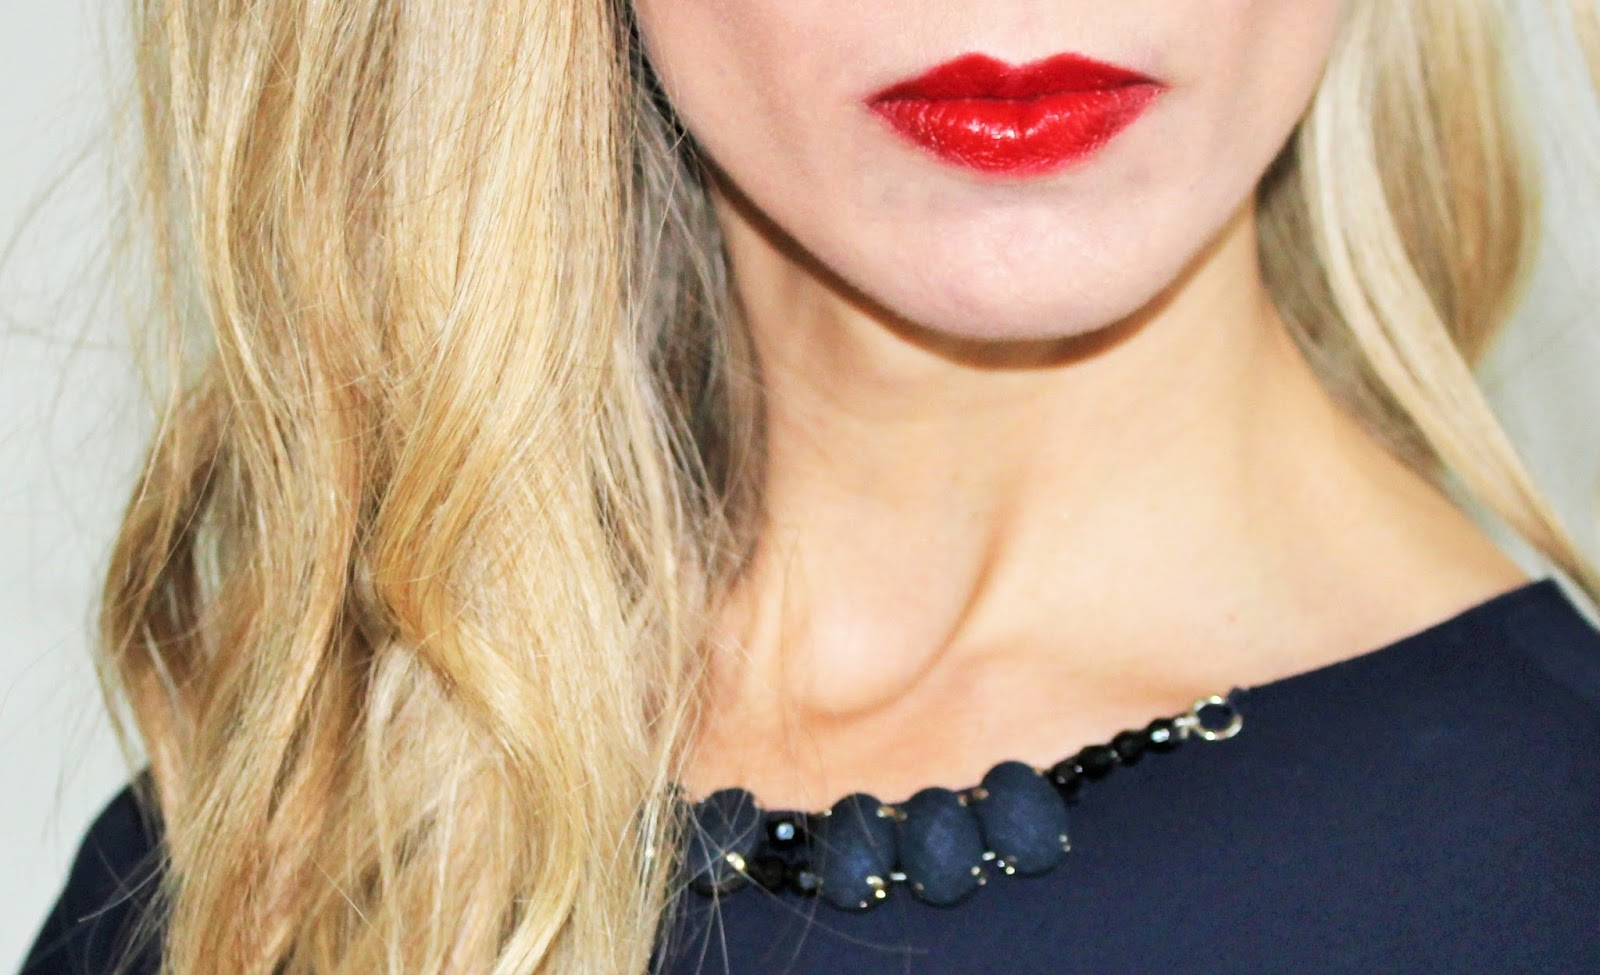 That Red Lip Classic Thing That You Like - 11